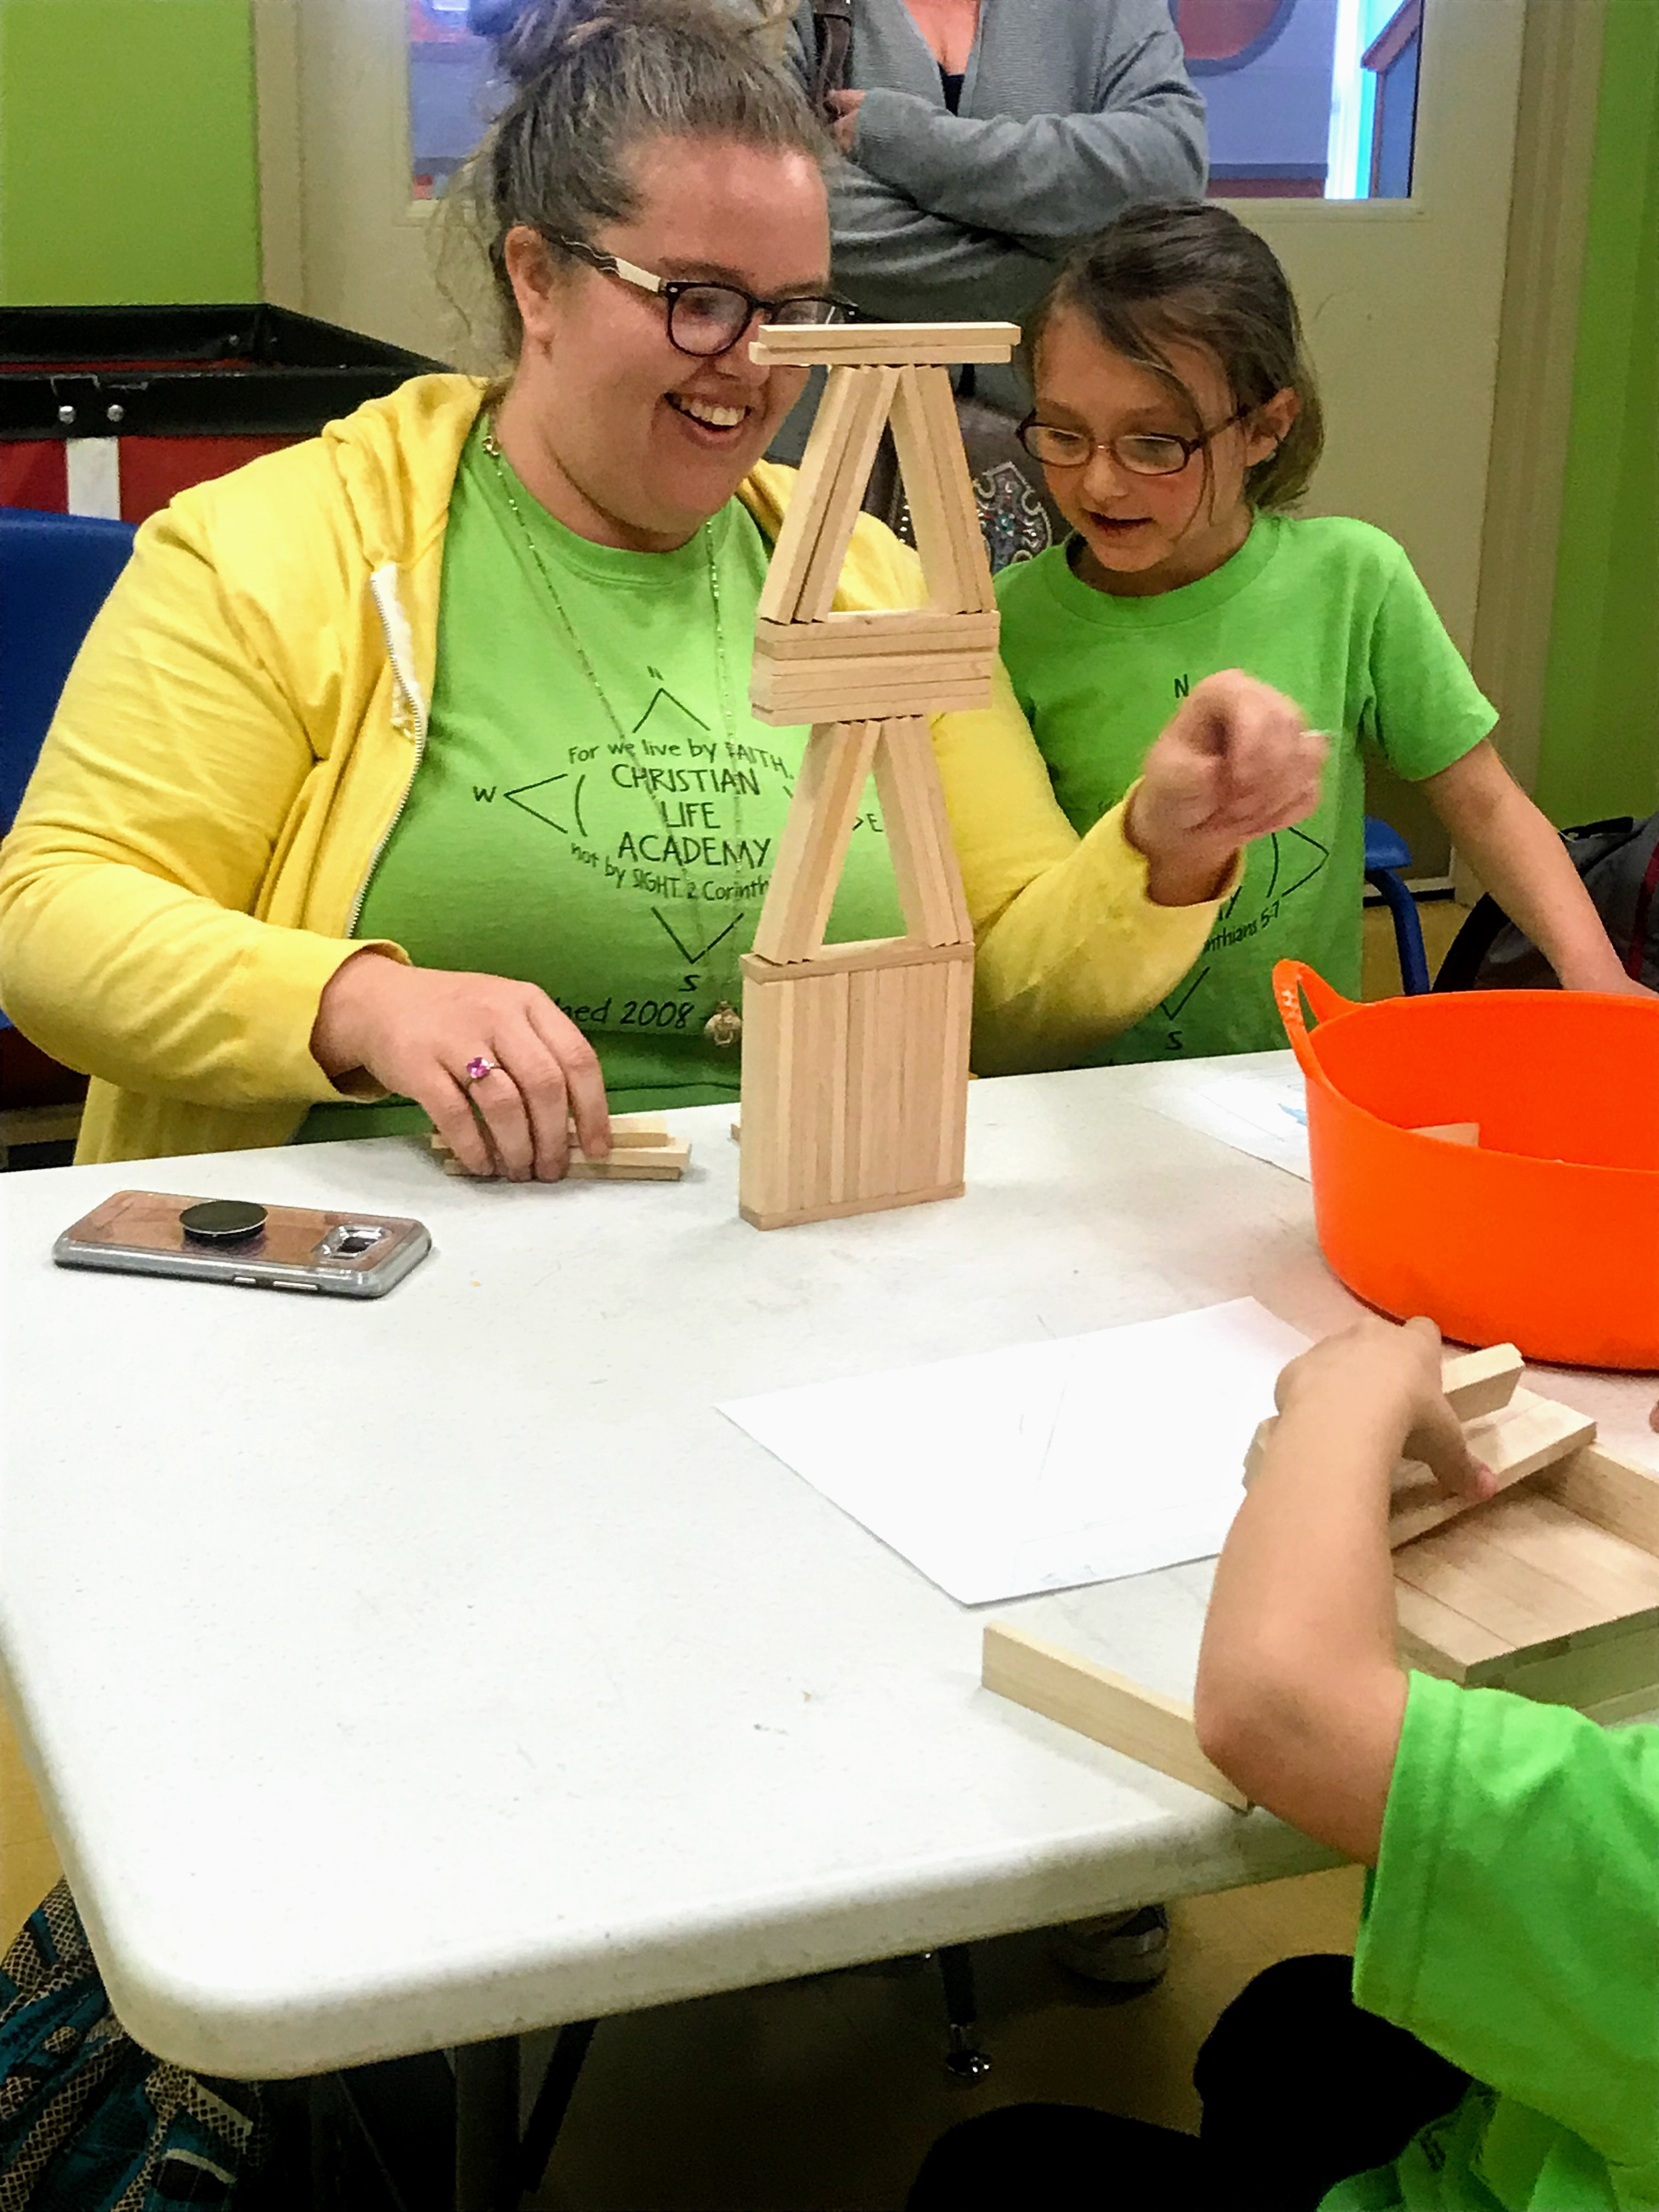 Teacher building with child